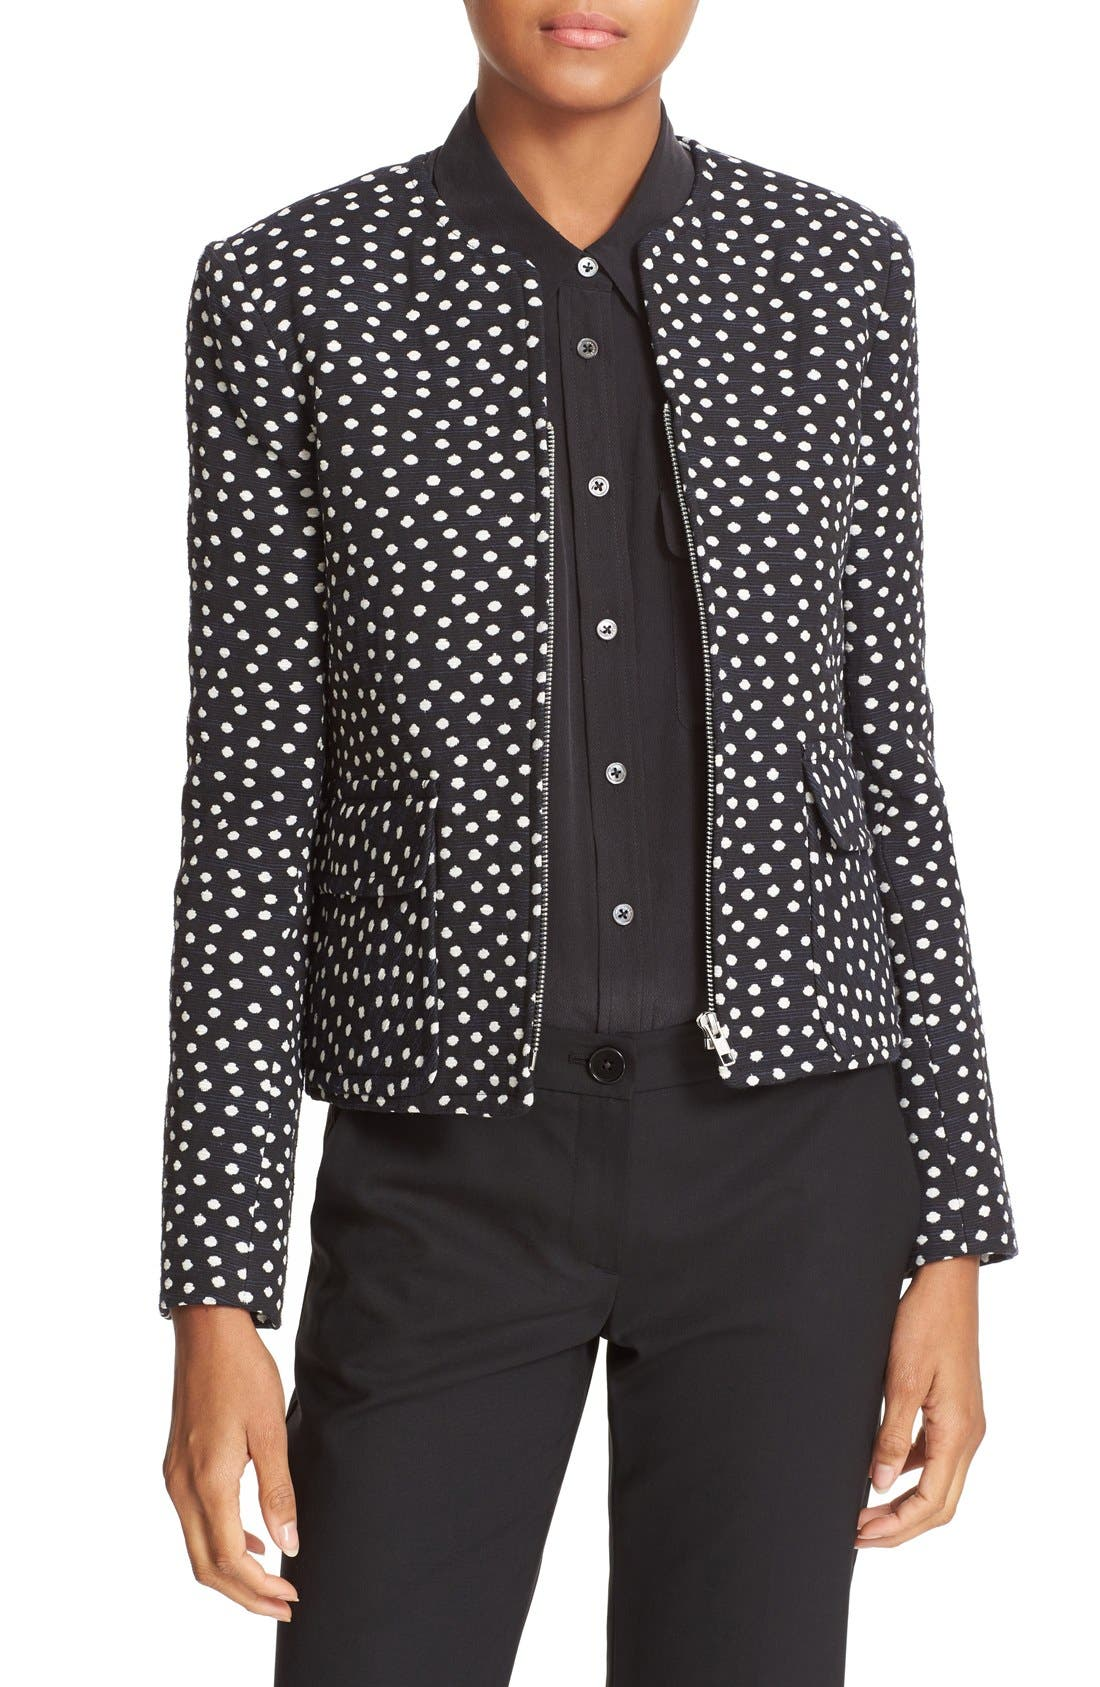 HELENE BERMAN Polka Dot Jacket